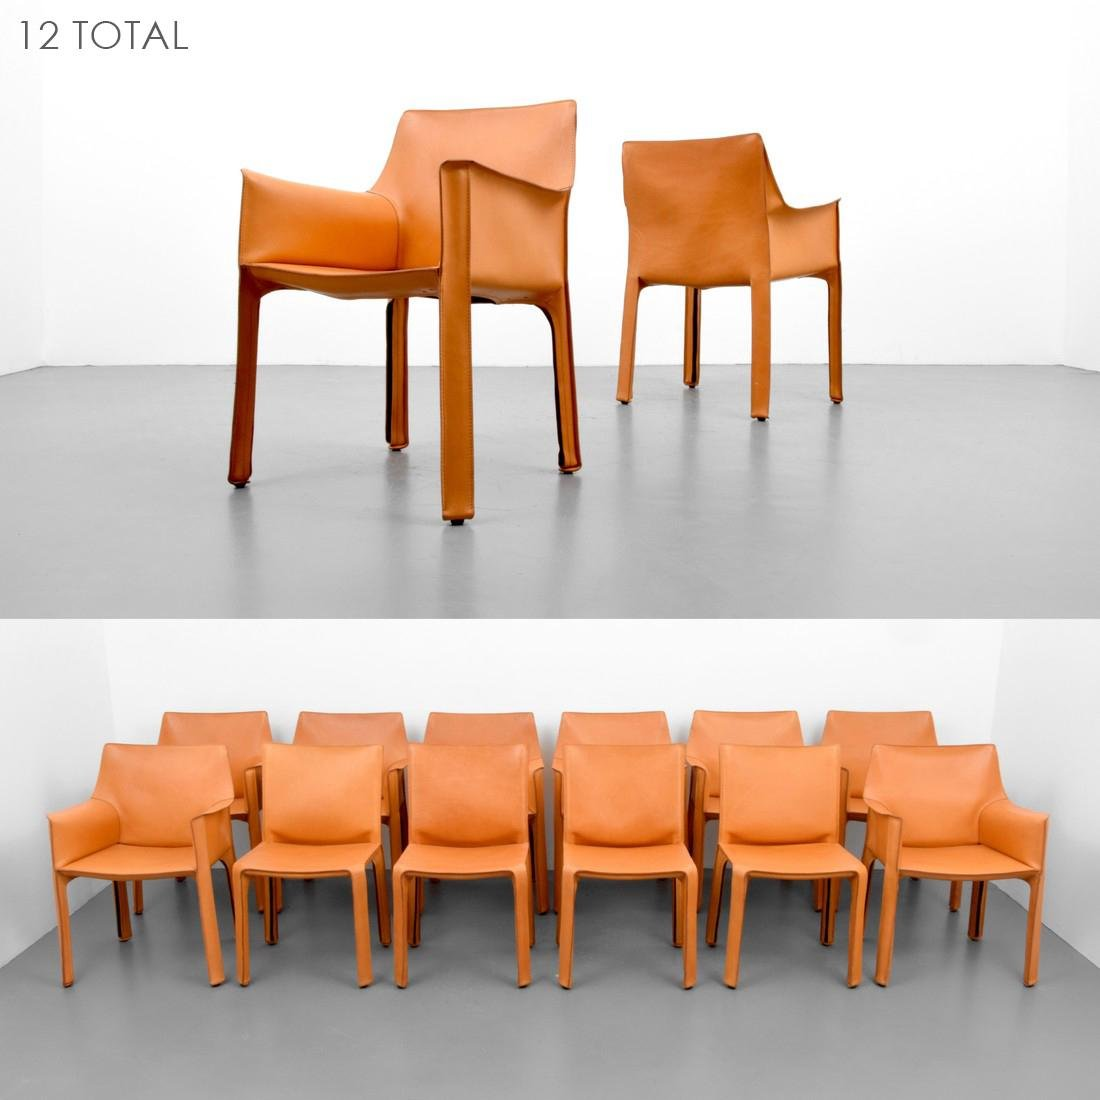 Mario Bellini Dining Chairs, Set of 12